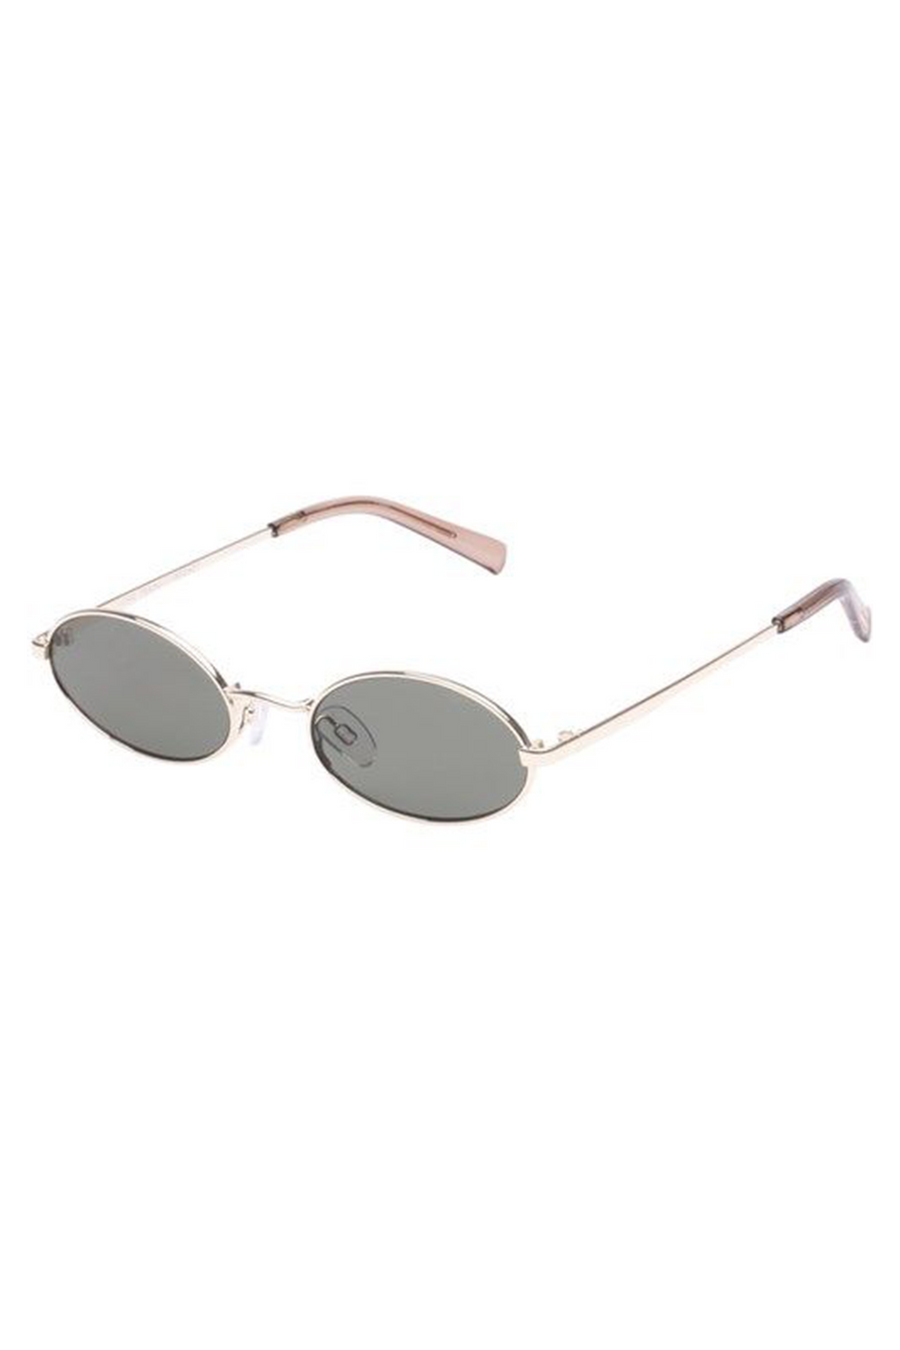 Love Train Sunnies by Le Specs